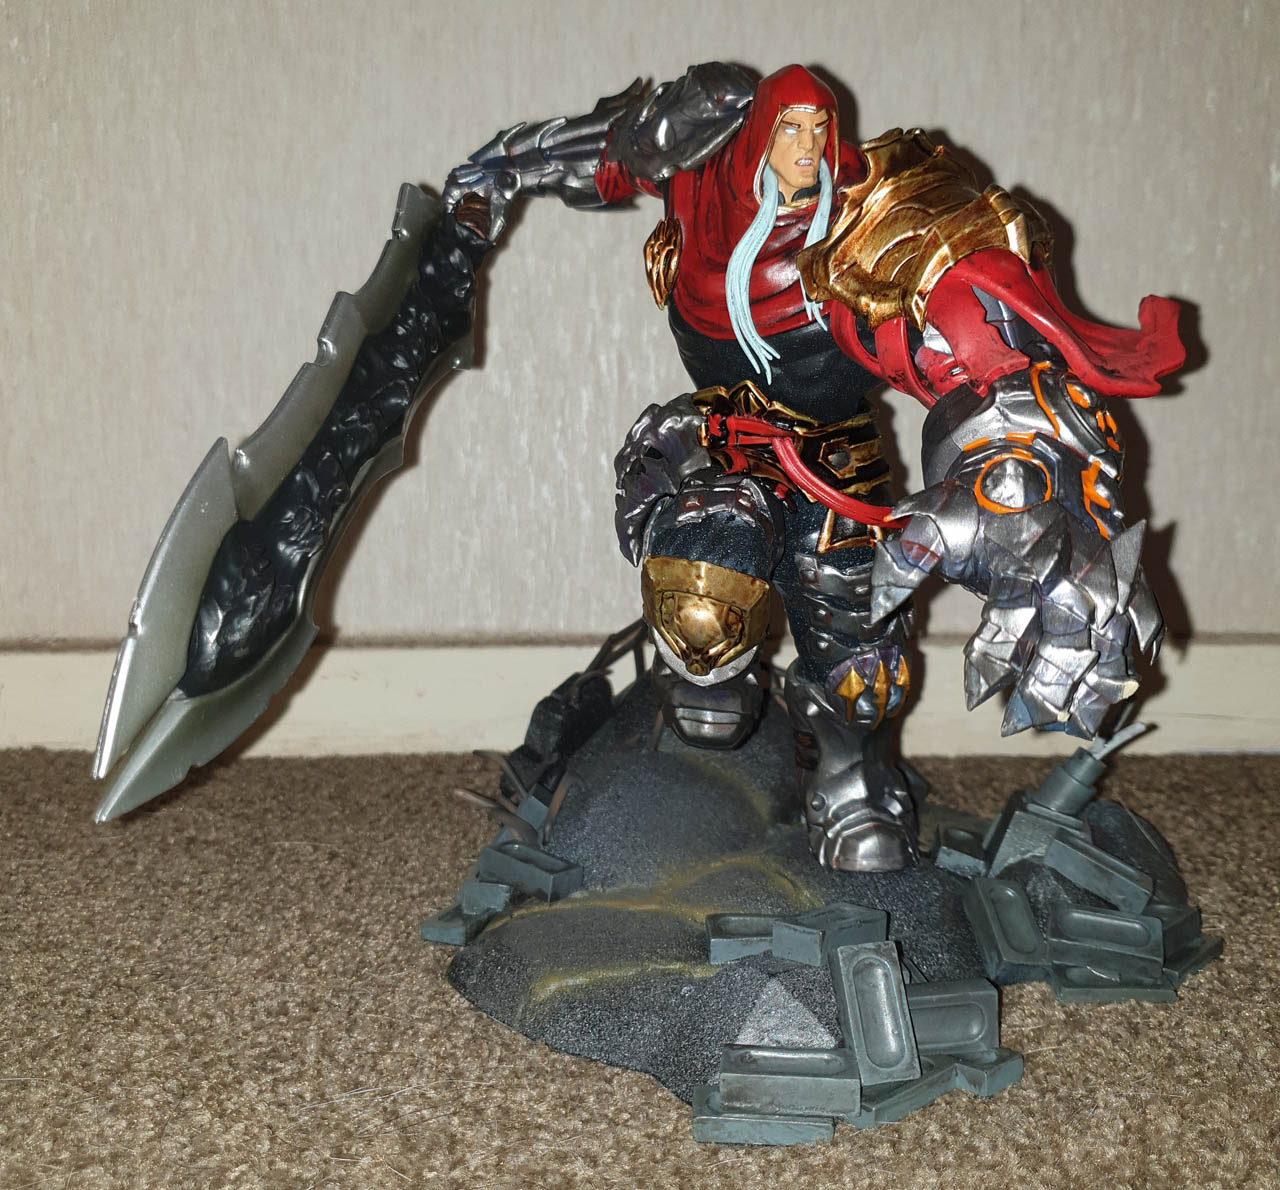 Darksiders Figurines Collection Review – STG